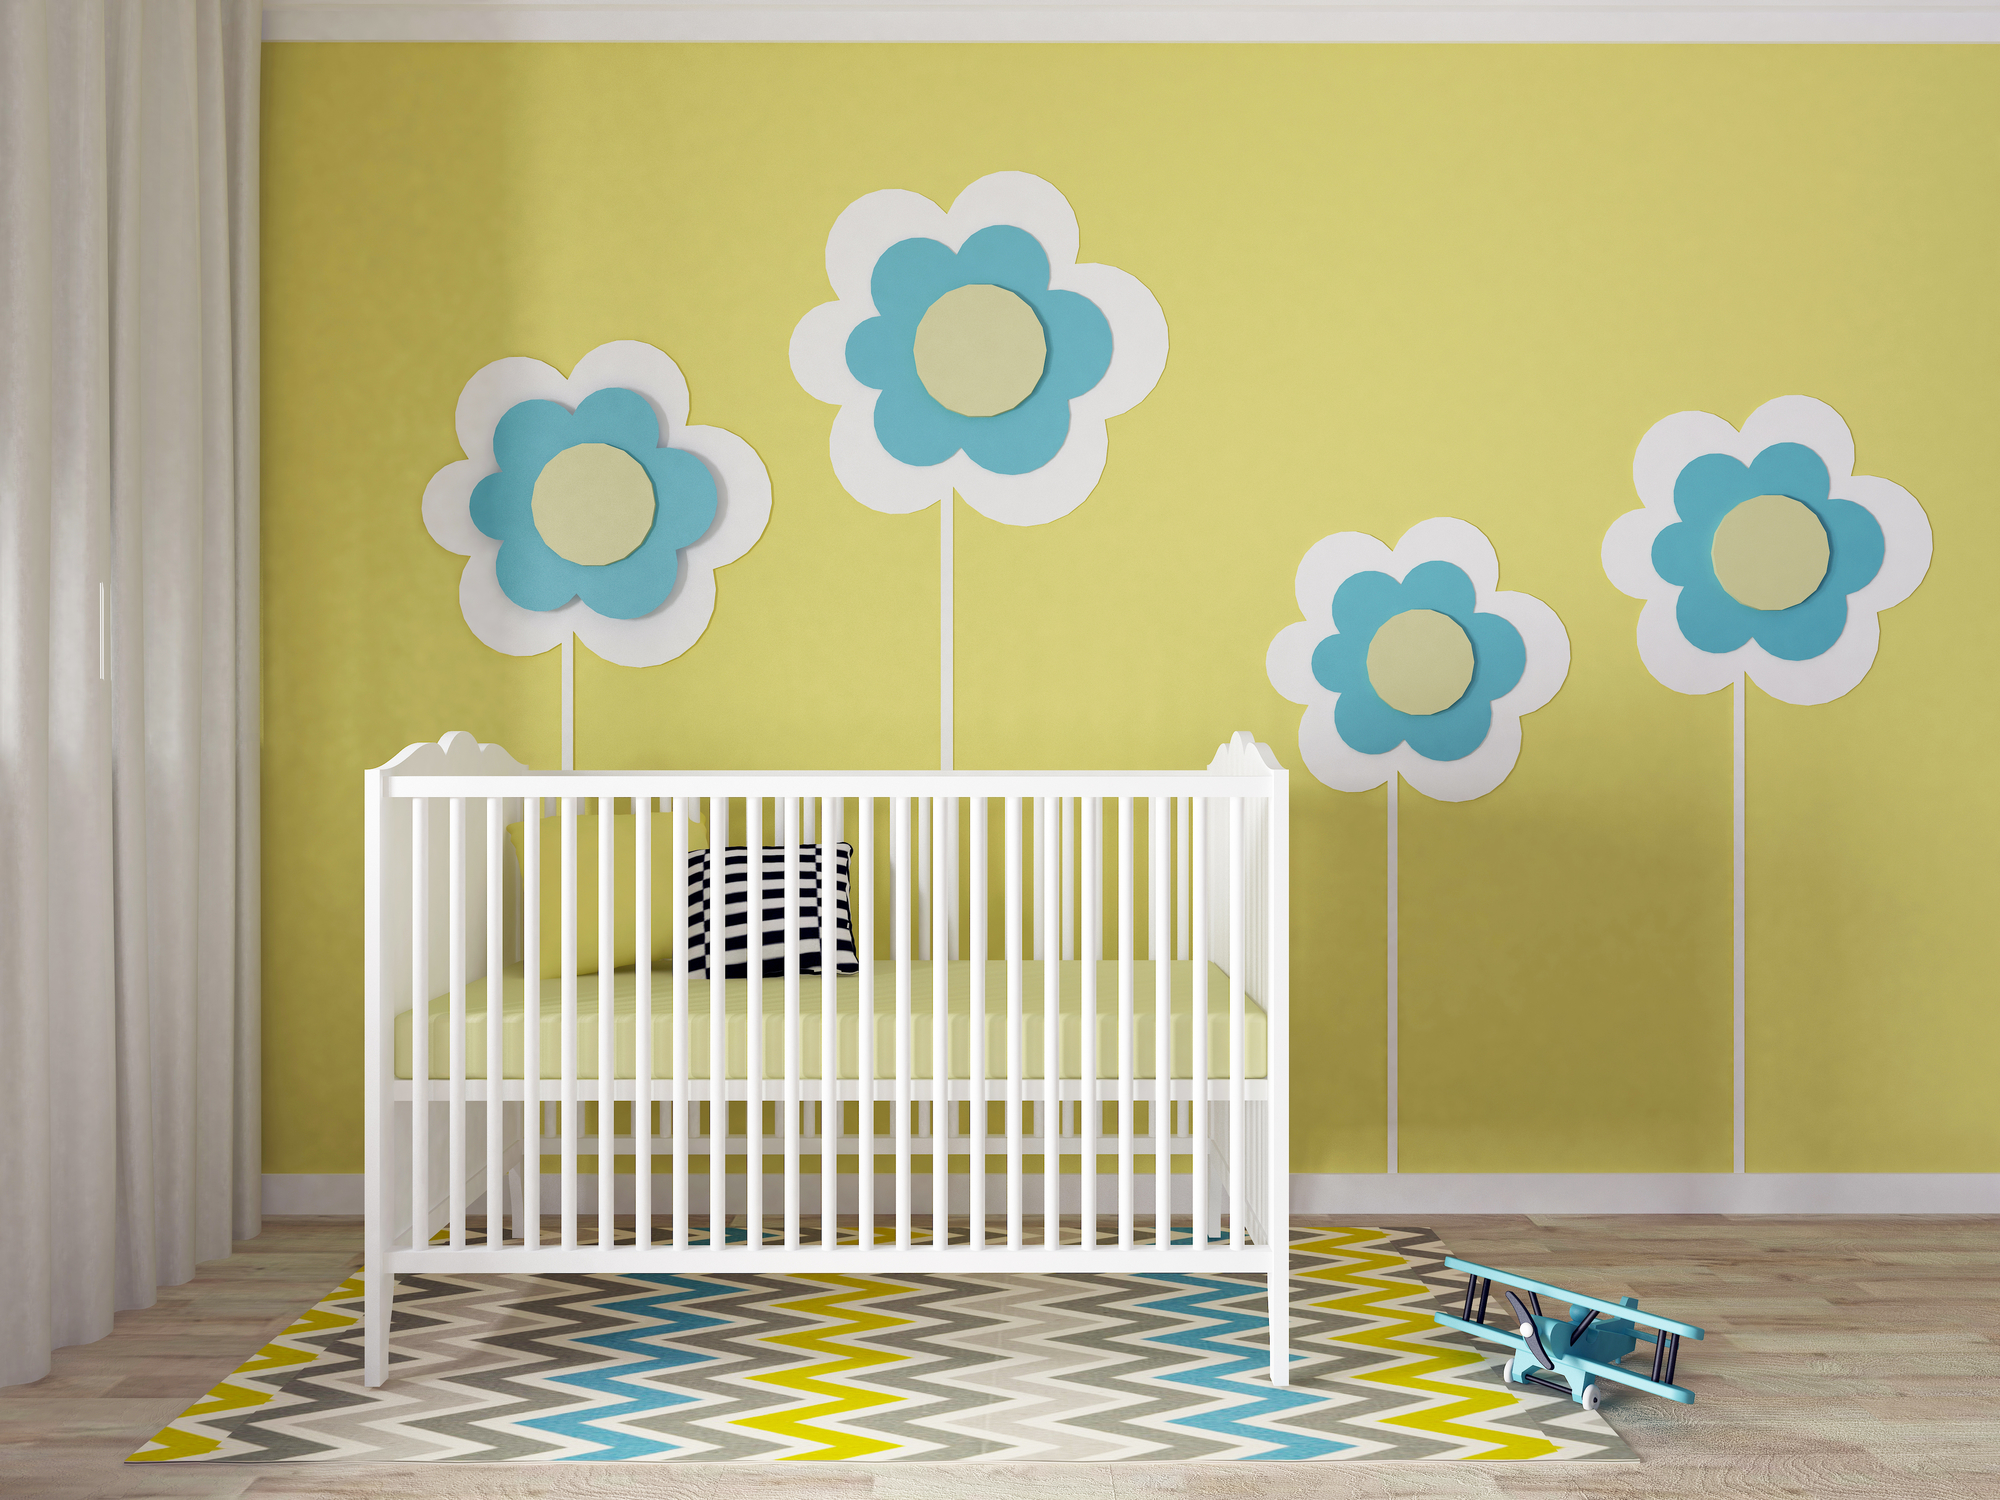 Selecting the Right Paint Color for Your Child\'s Room - SPG ...